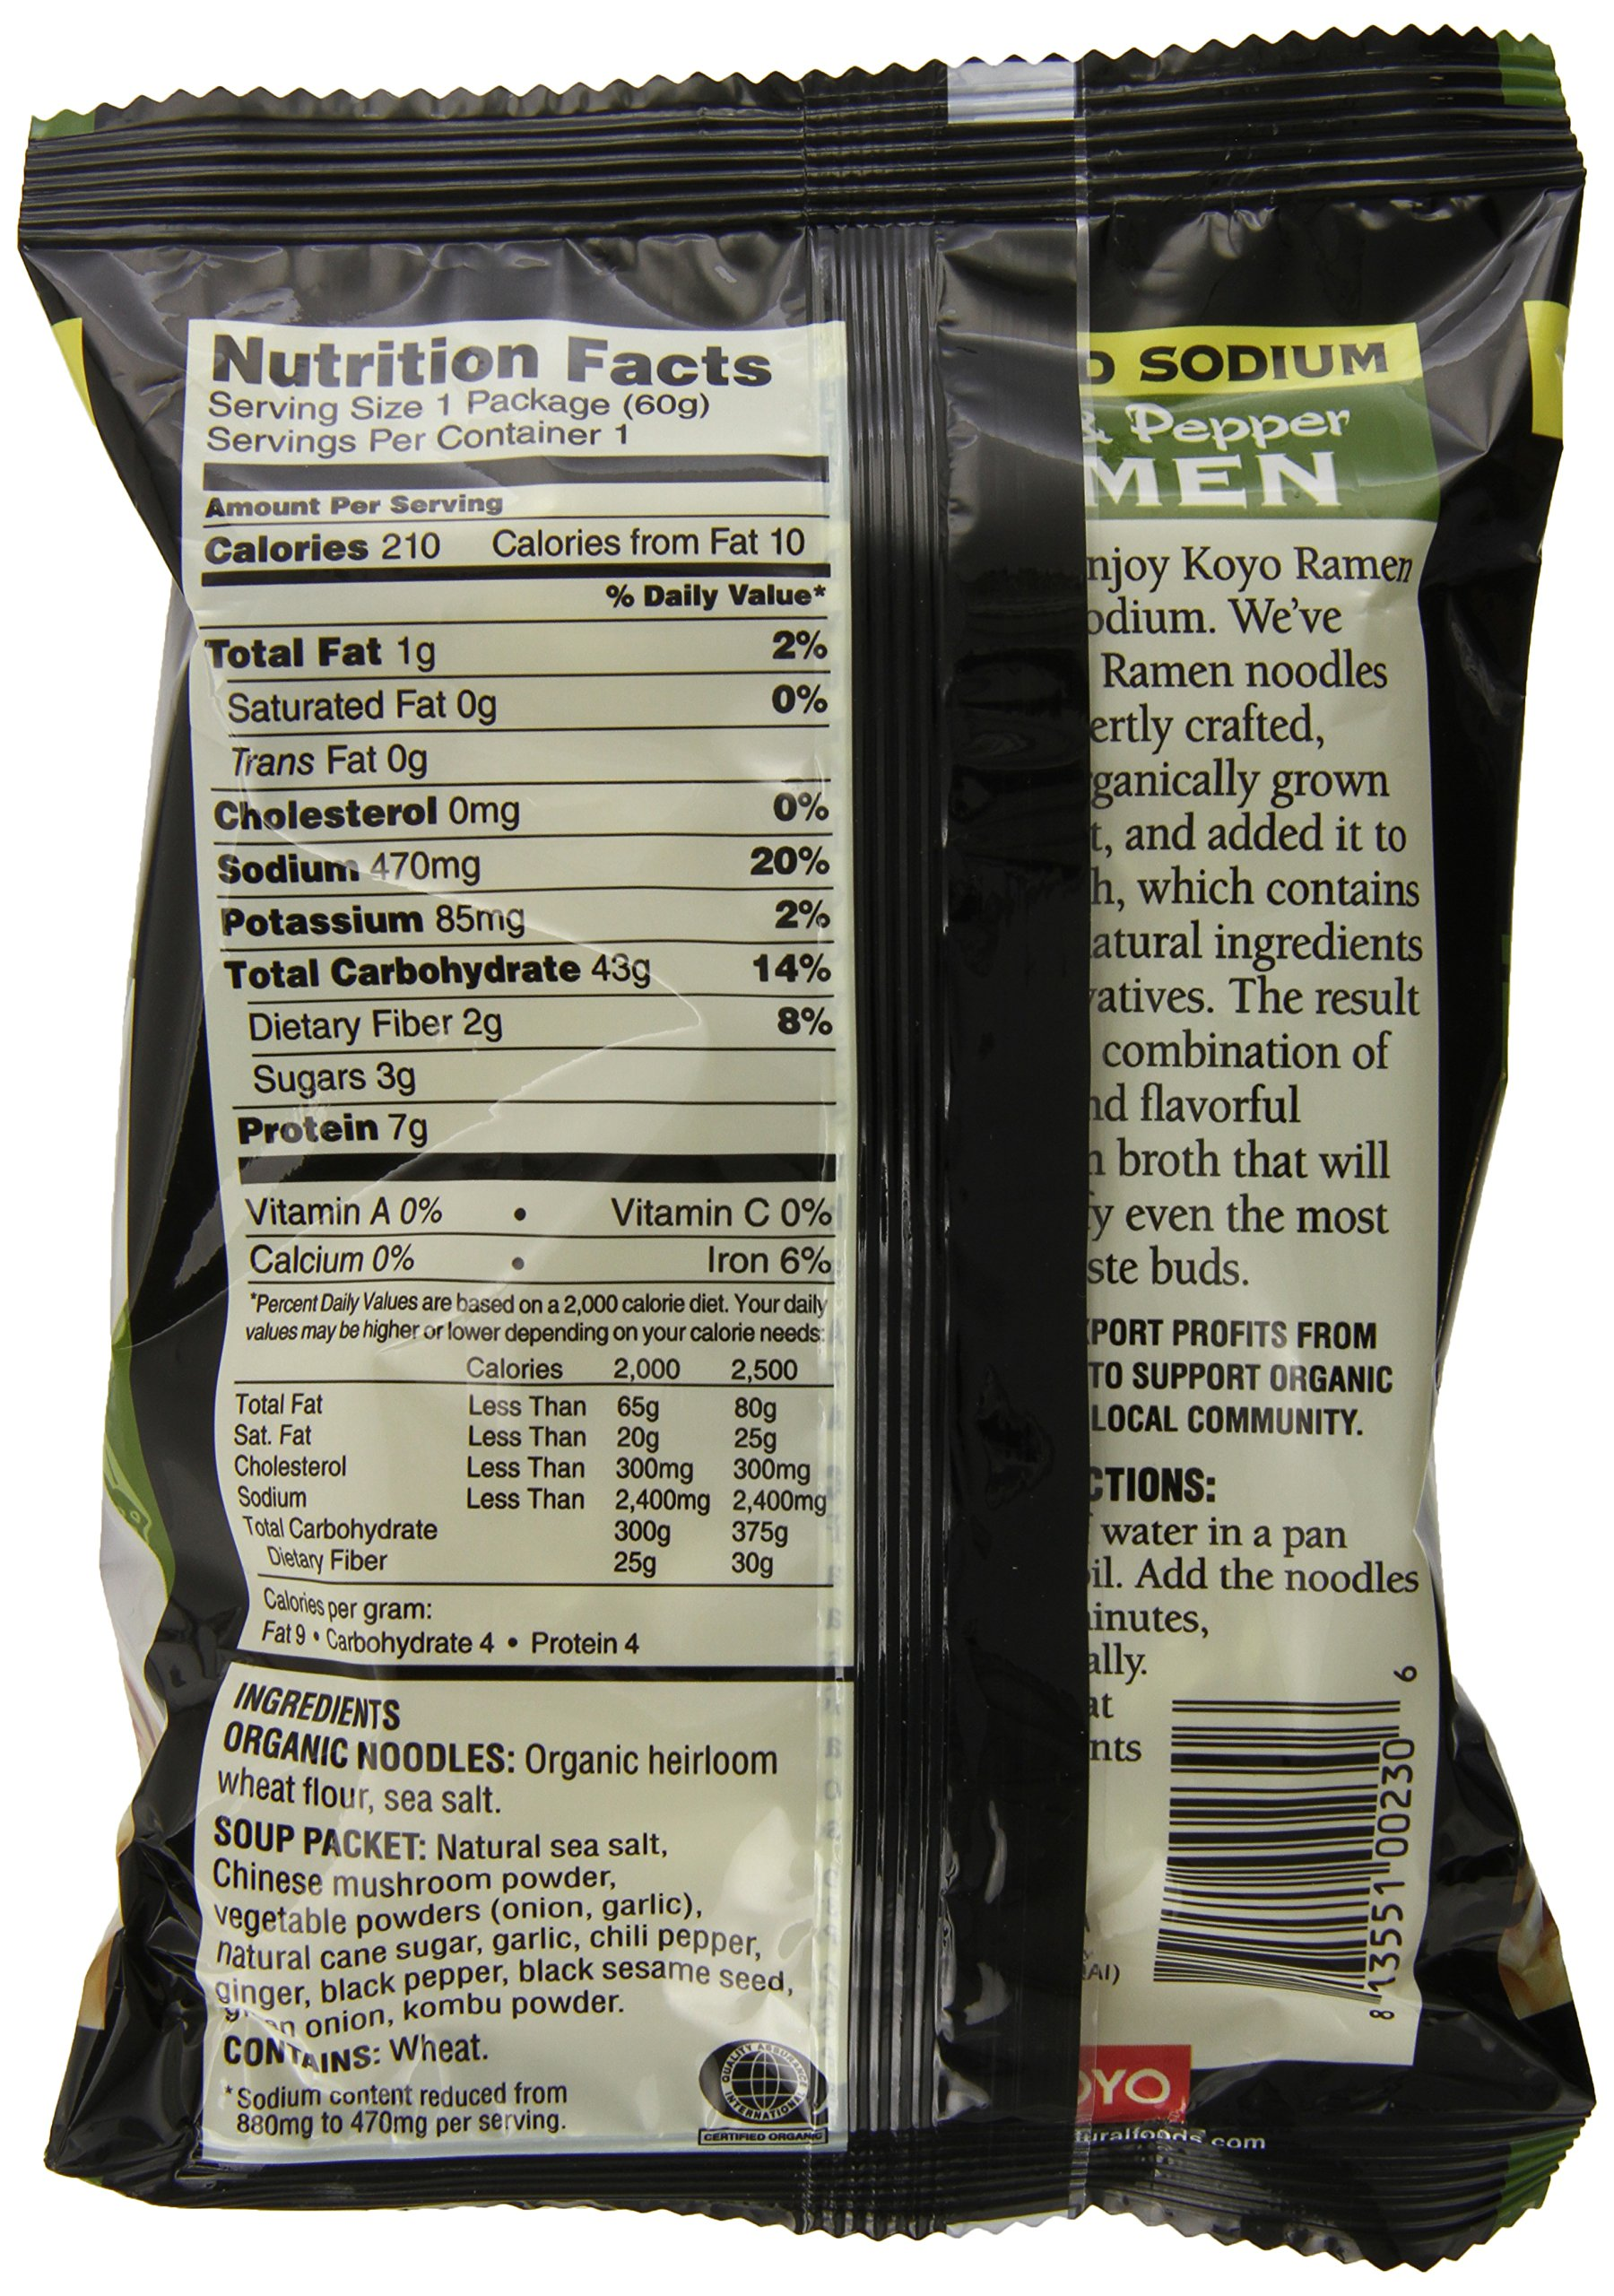 KOYO Reduced Sodium Garlic and Pepper Ramen Made with Organic Noodles, 2.1 Ounce (Pack of 12) by Koyo (Image #4)